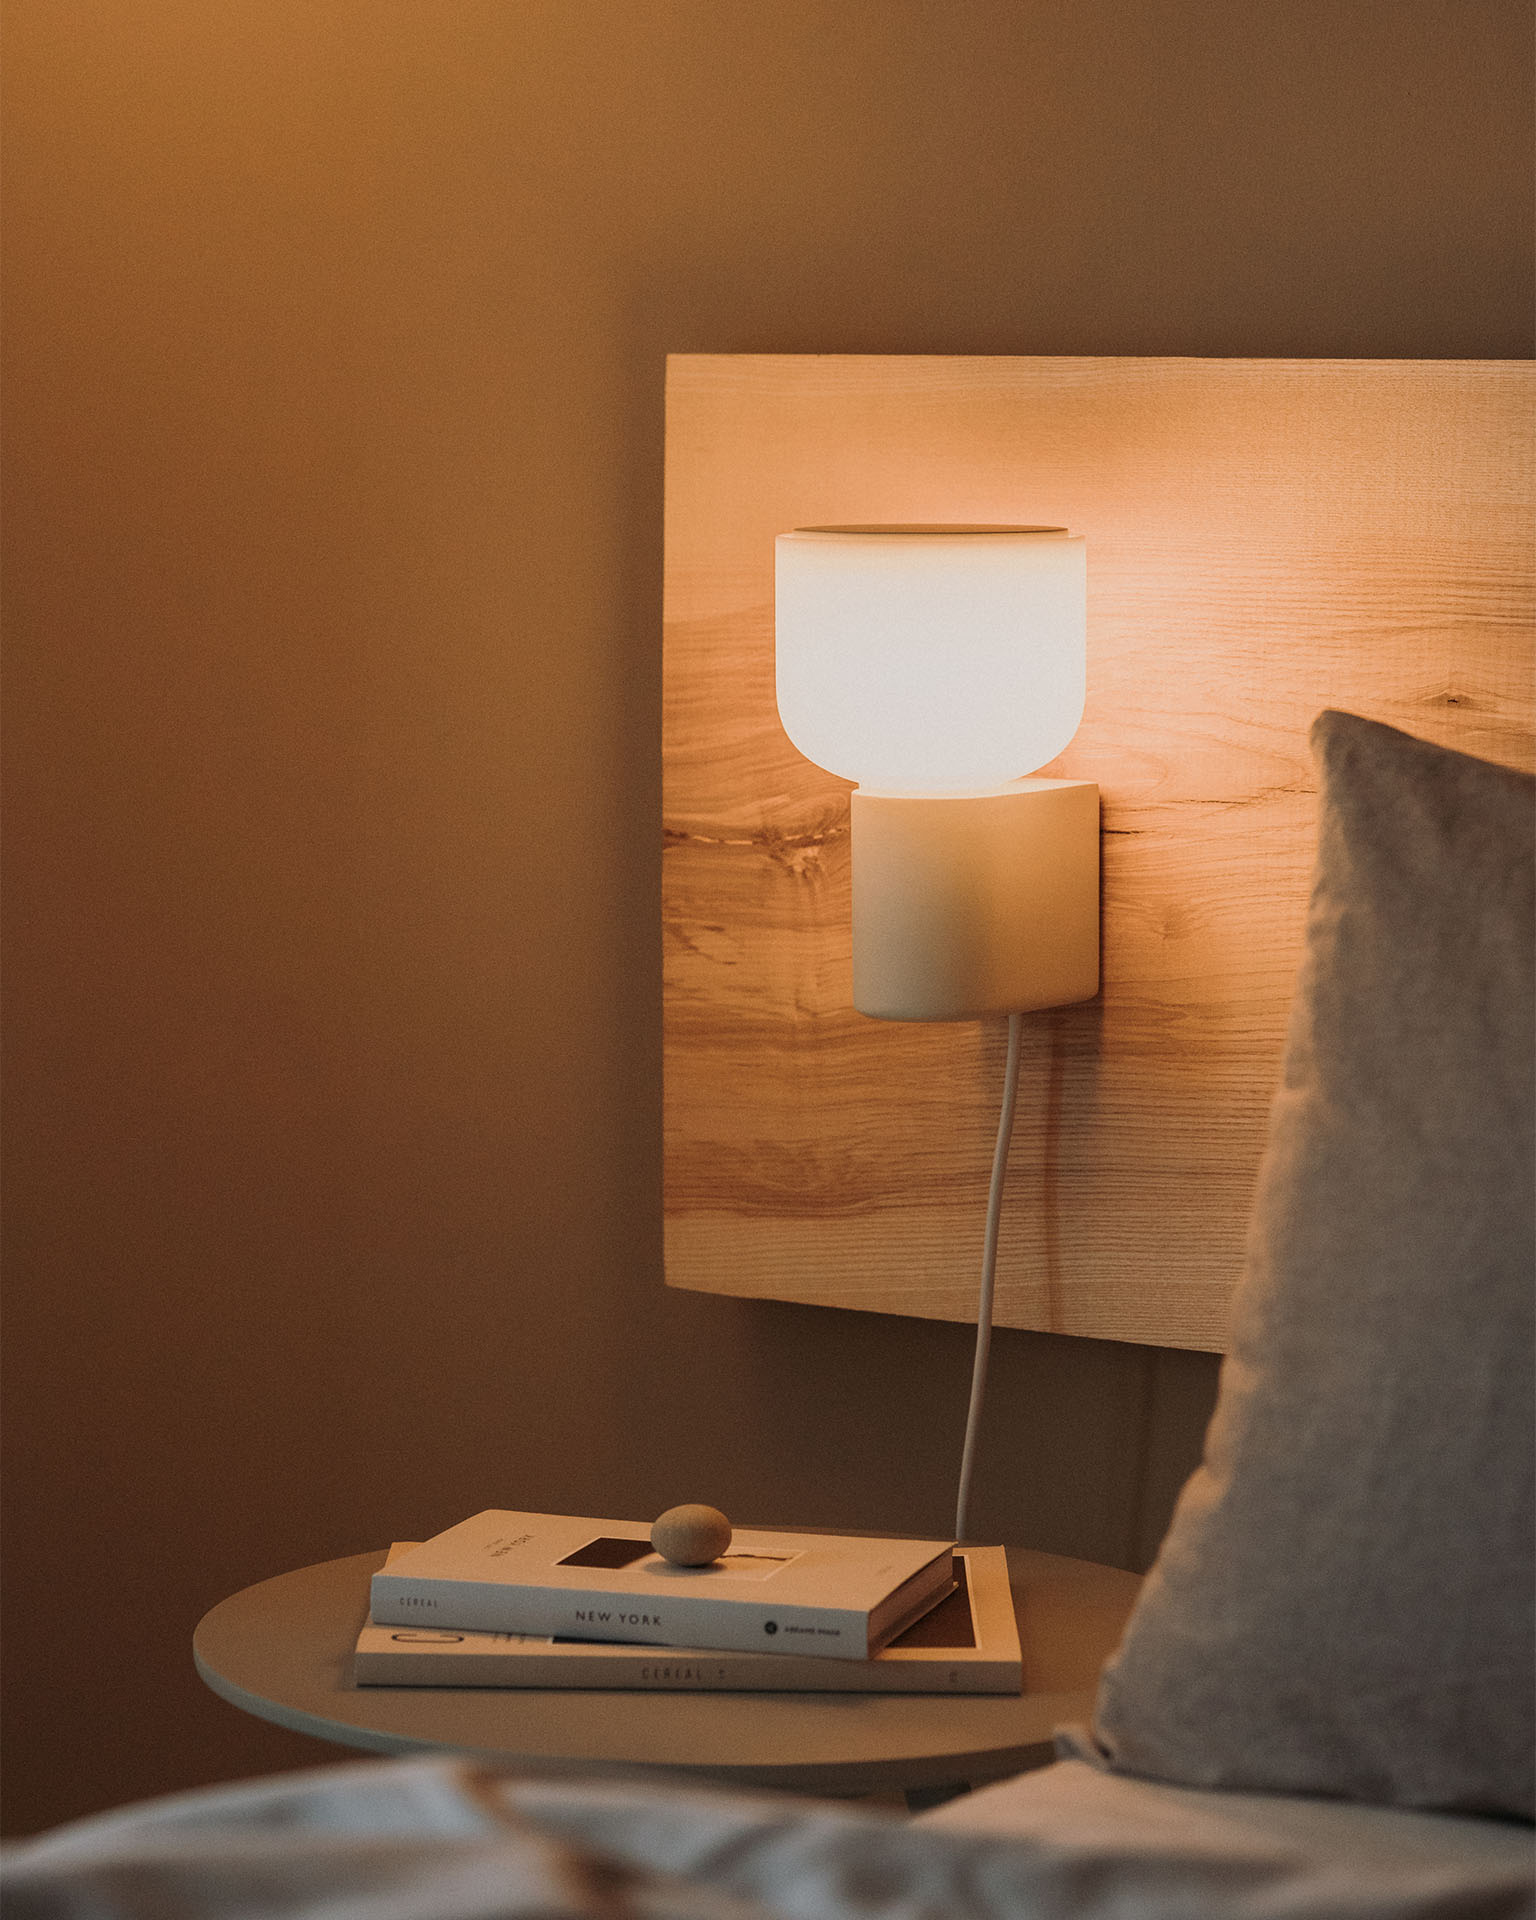 Arpeggio Wall Light for Gantri, mounted about a bedside table